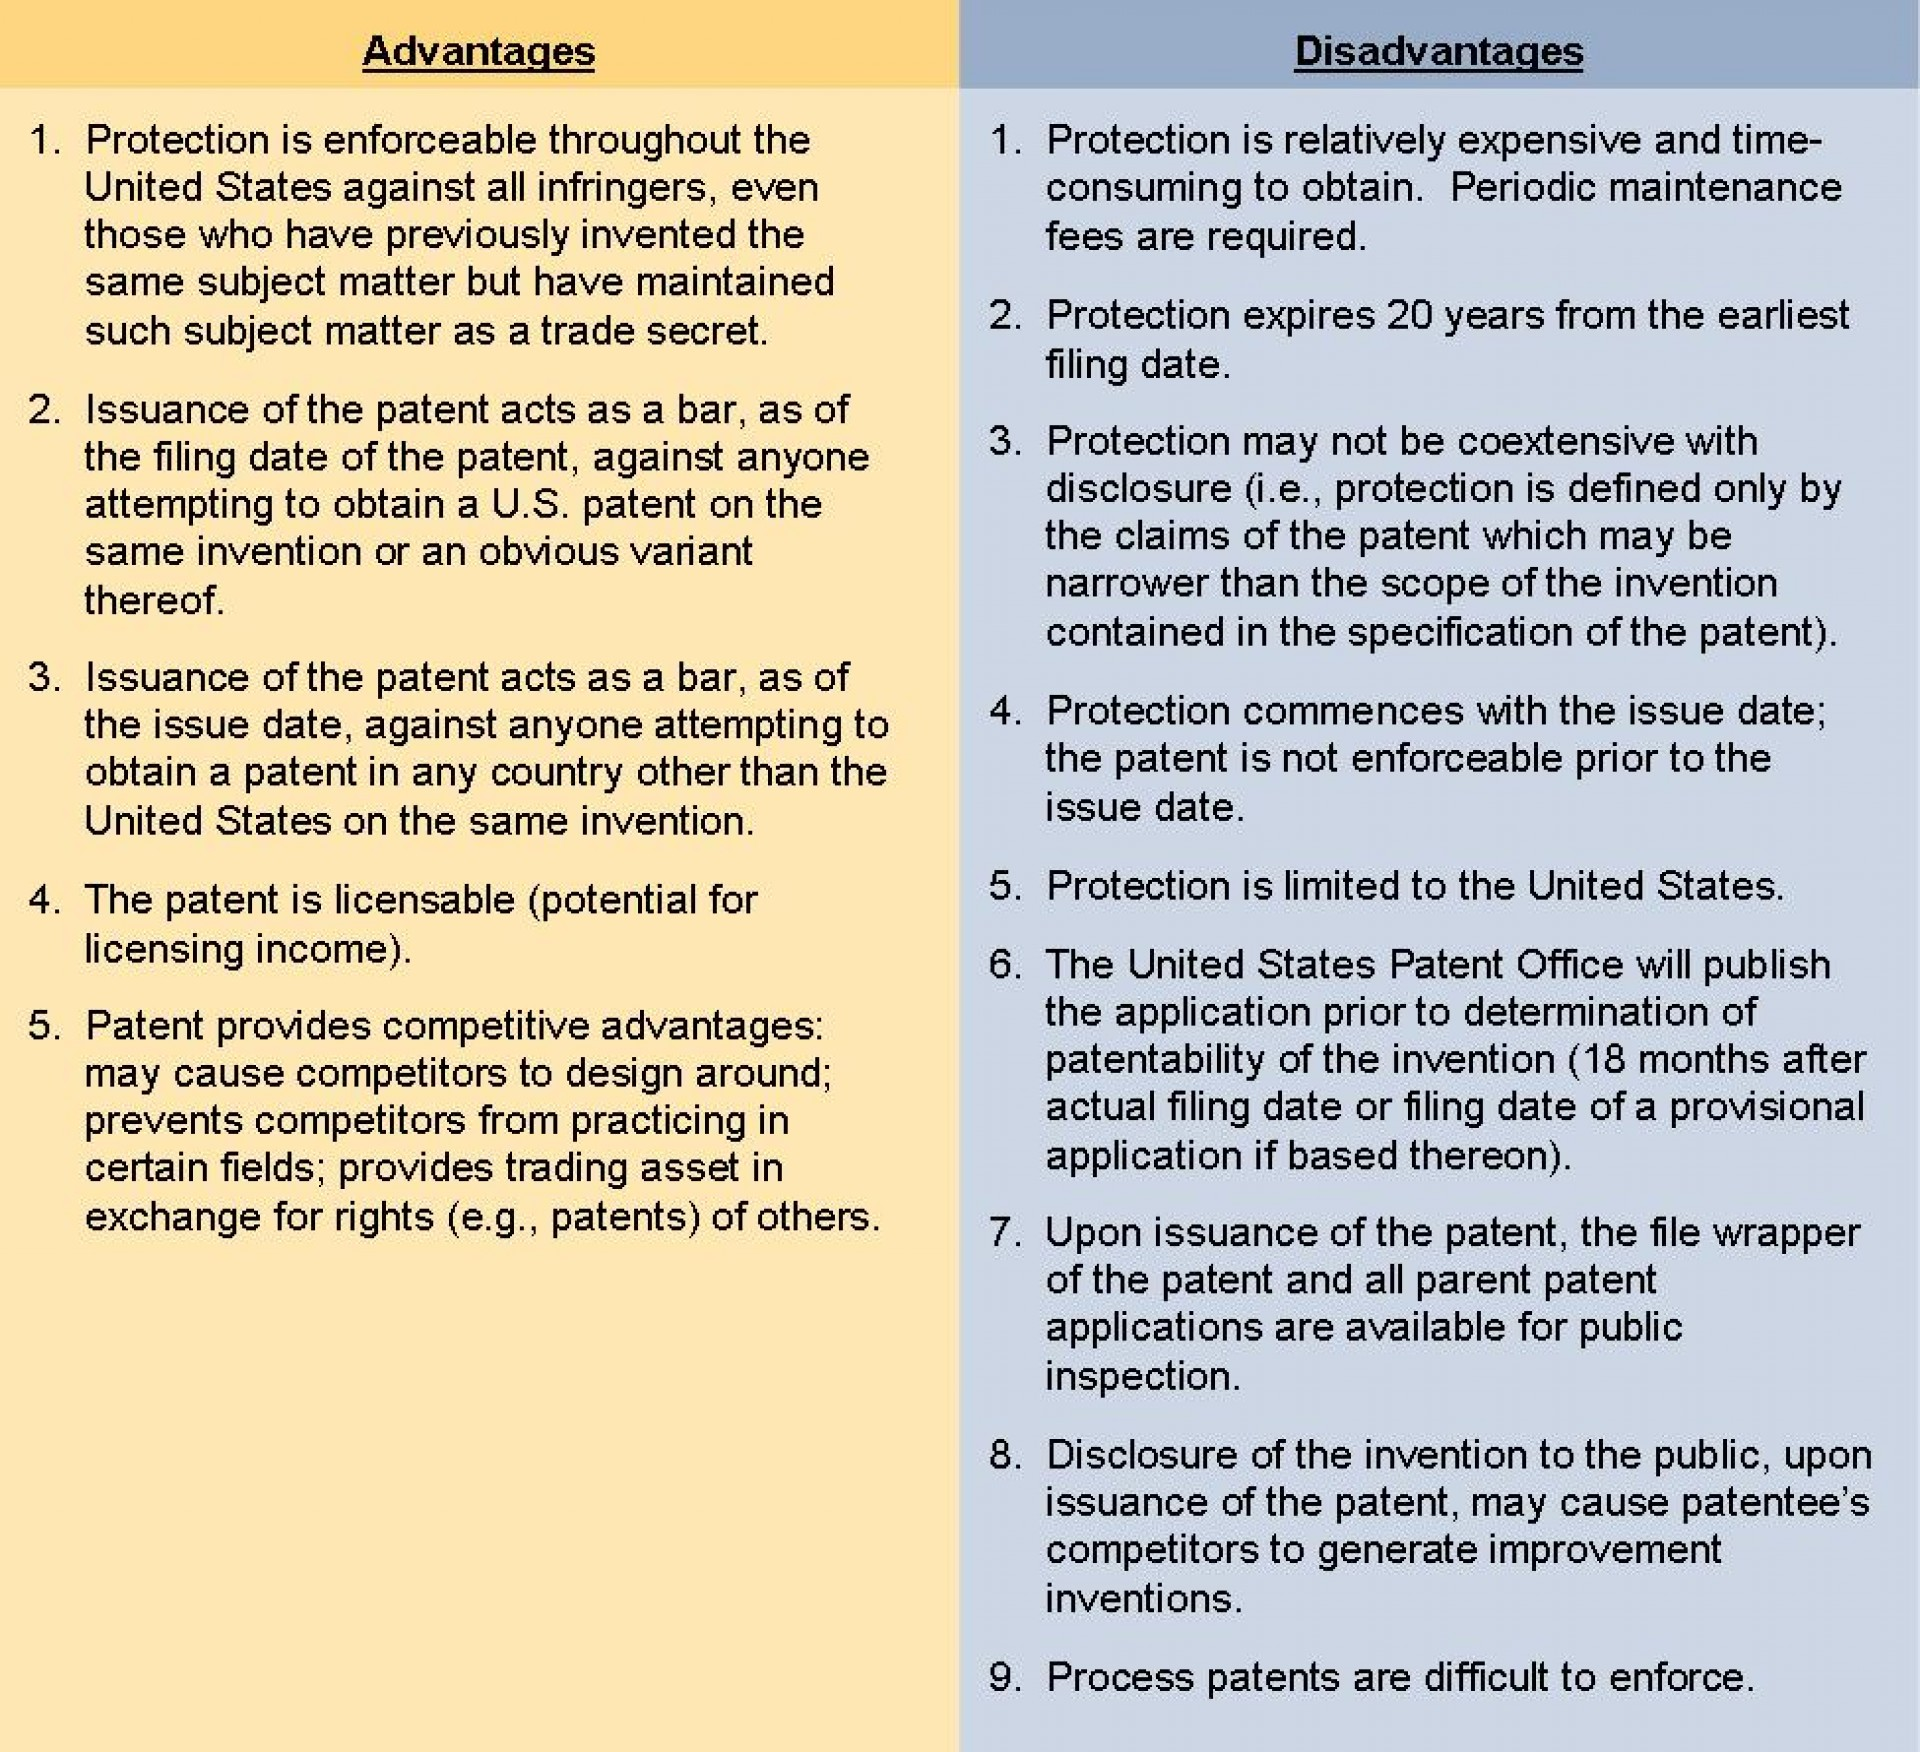 027 News87pic2 Advantage And Disadvantage Of Science Essay Shocking Advantages Disadvantages With Quotes In Kannada Tamil Pdf 1920